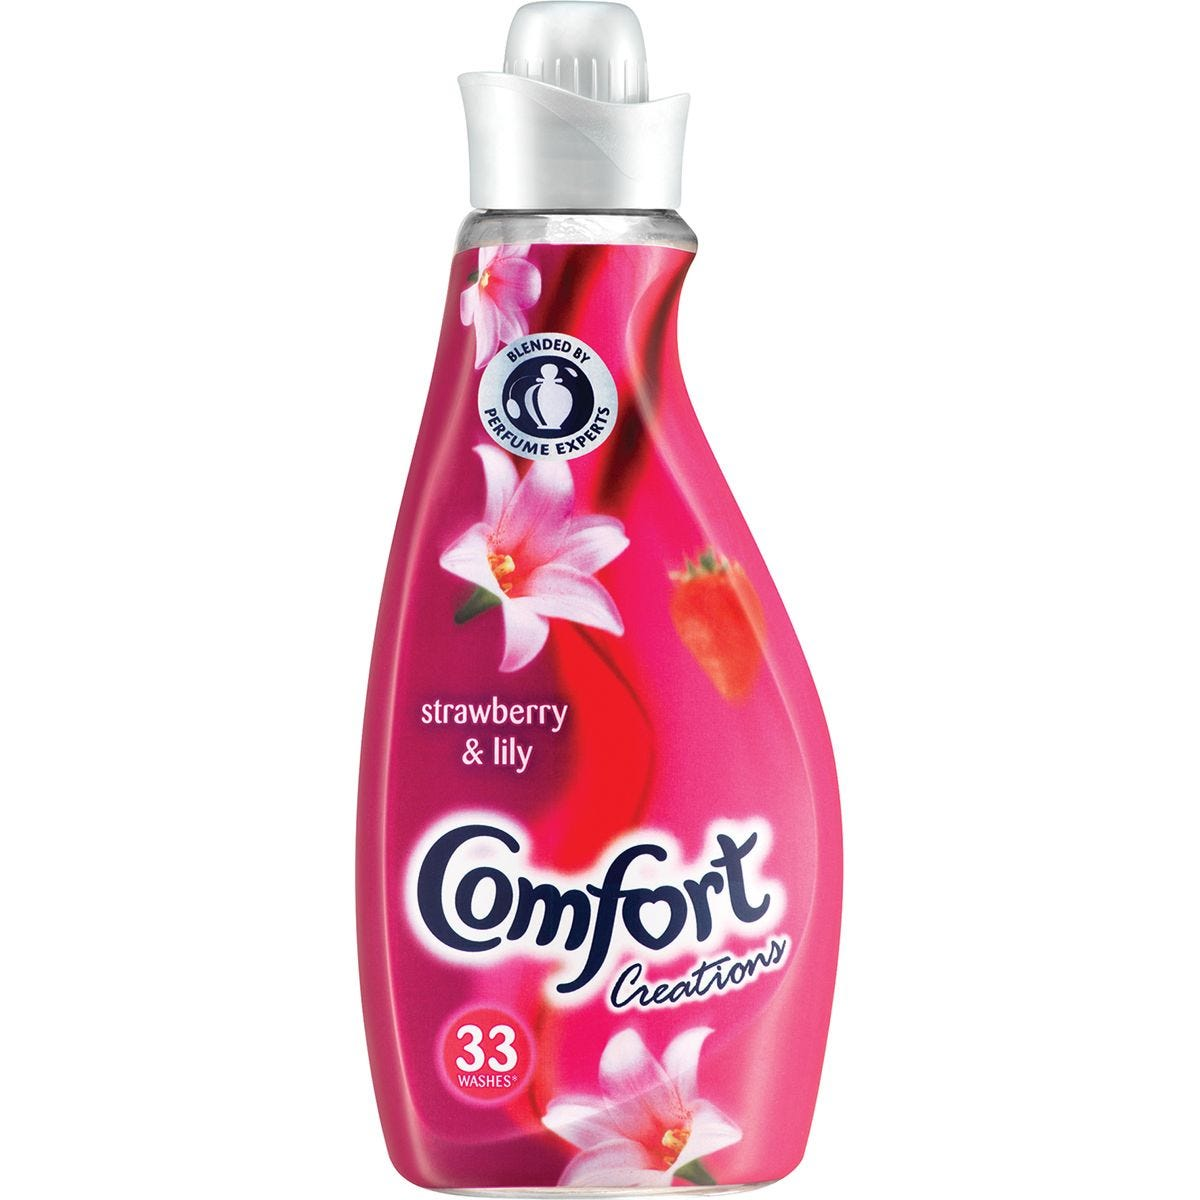 Comfort Creations Strawberry Fabric Conditioner